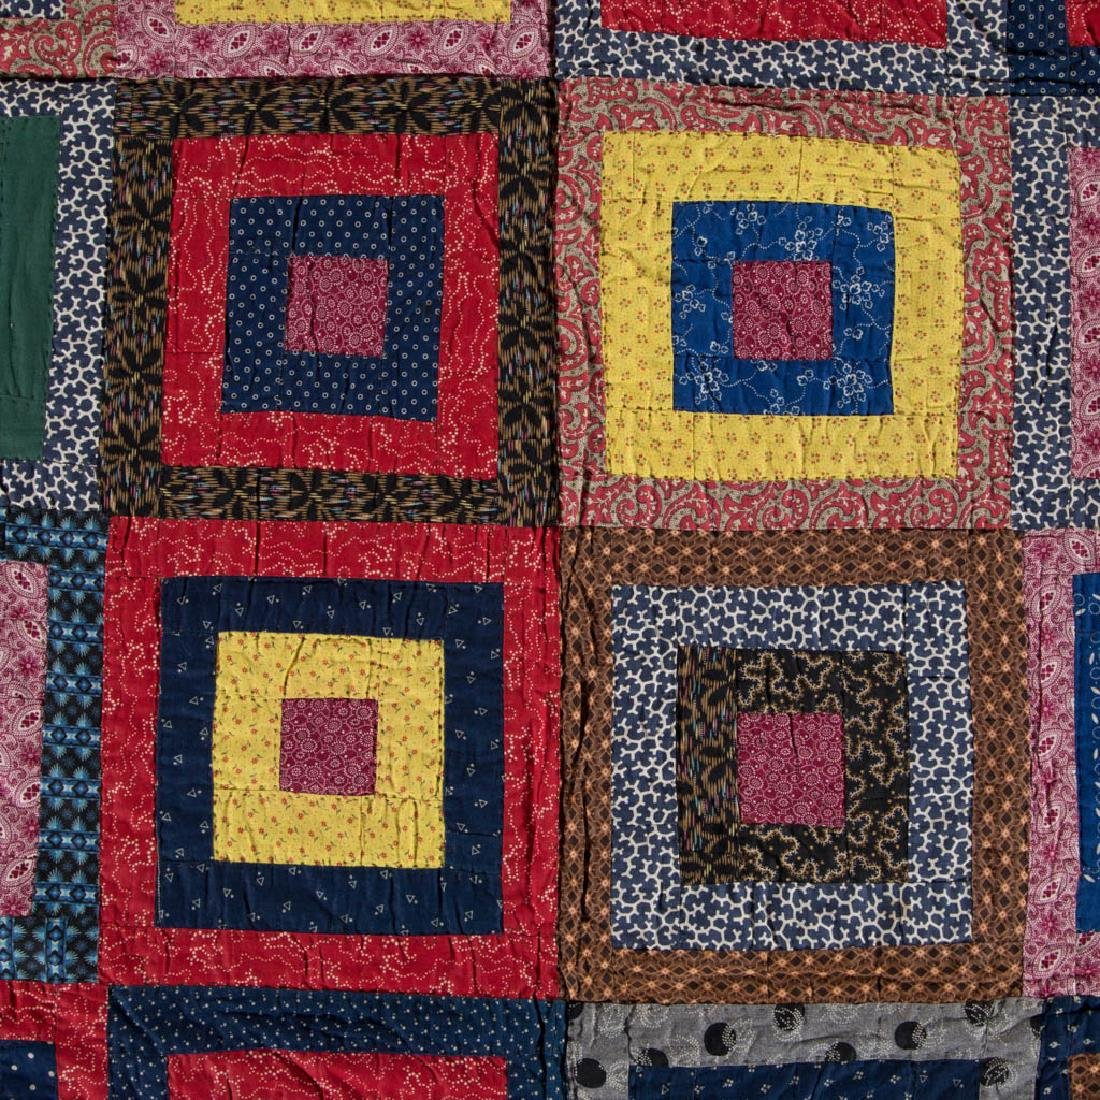 PENNSYLVANIA LOG CABIN PIECED QUILT - 3